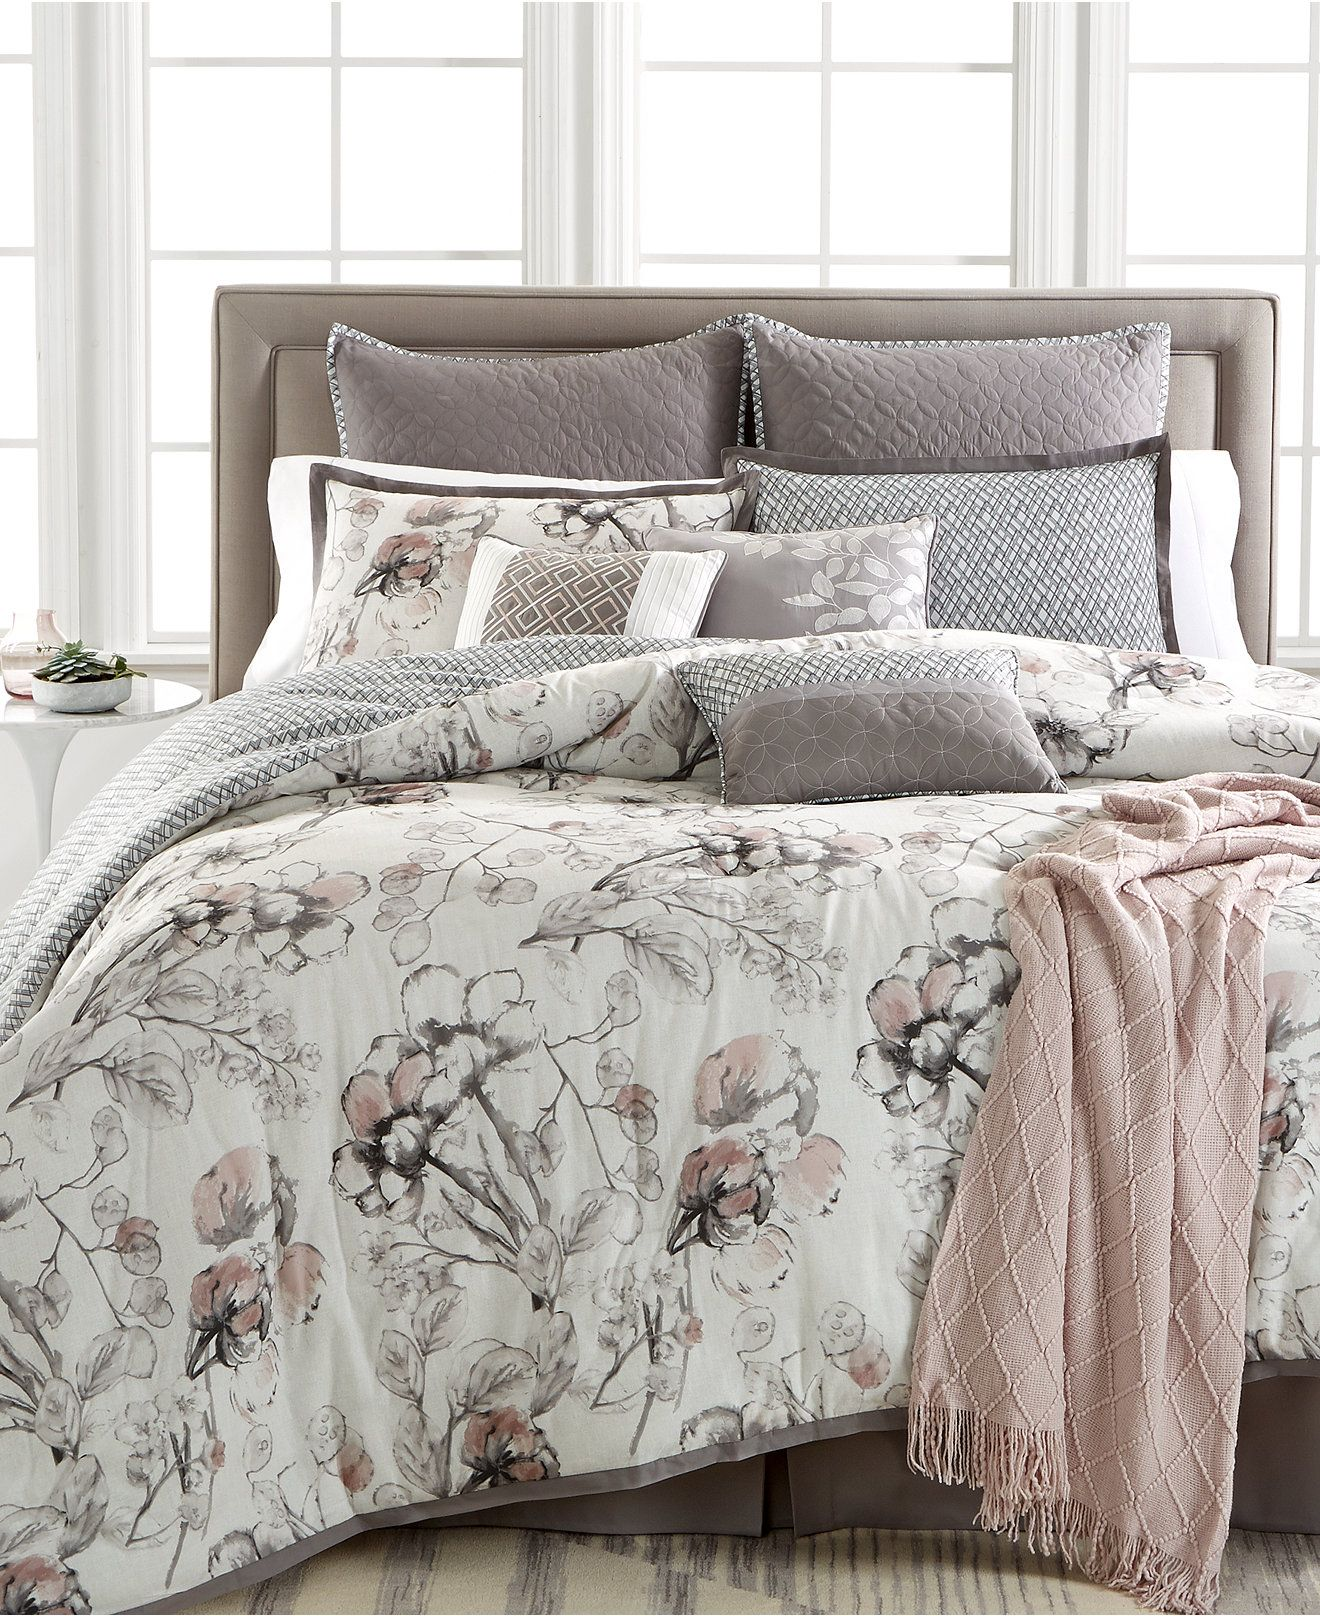 Duvet And Comforter Sets Kelly Ripa Home Pressed Floral 10 Piece Comforter Sets Only At